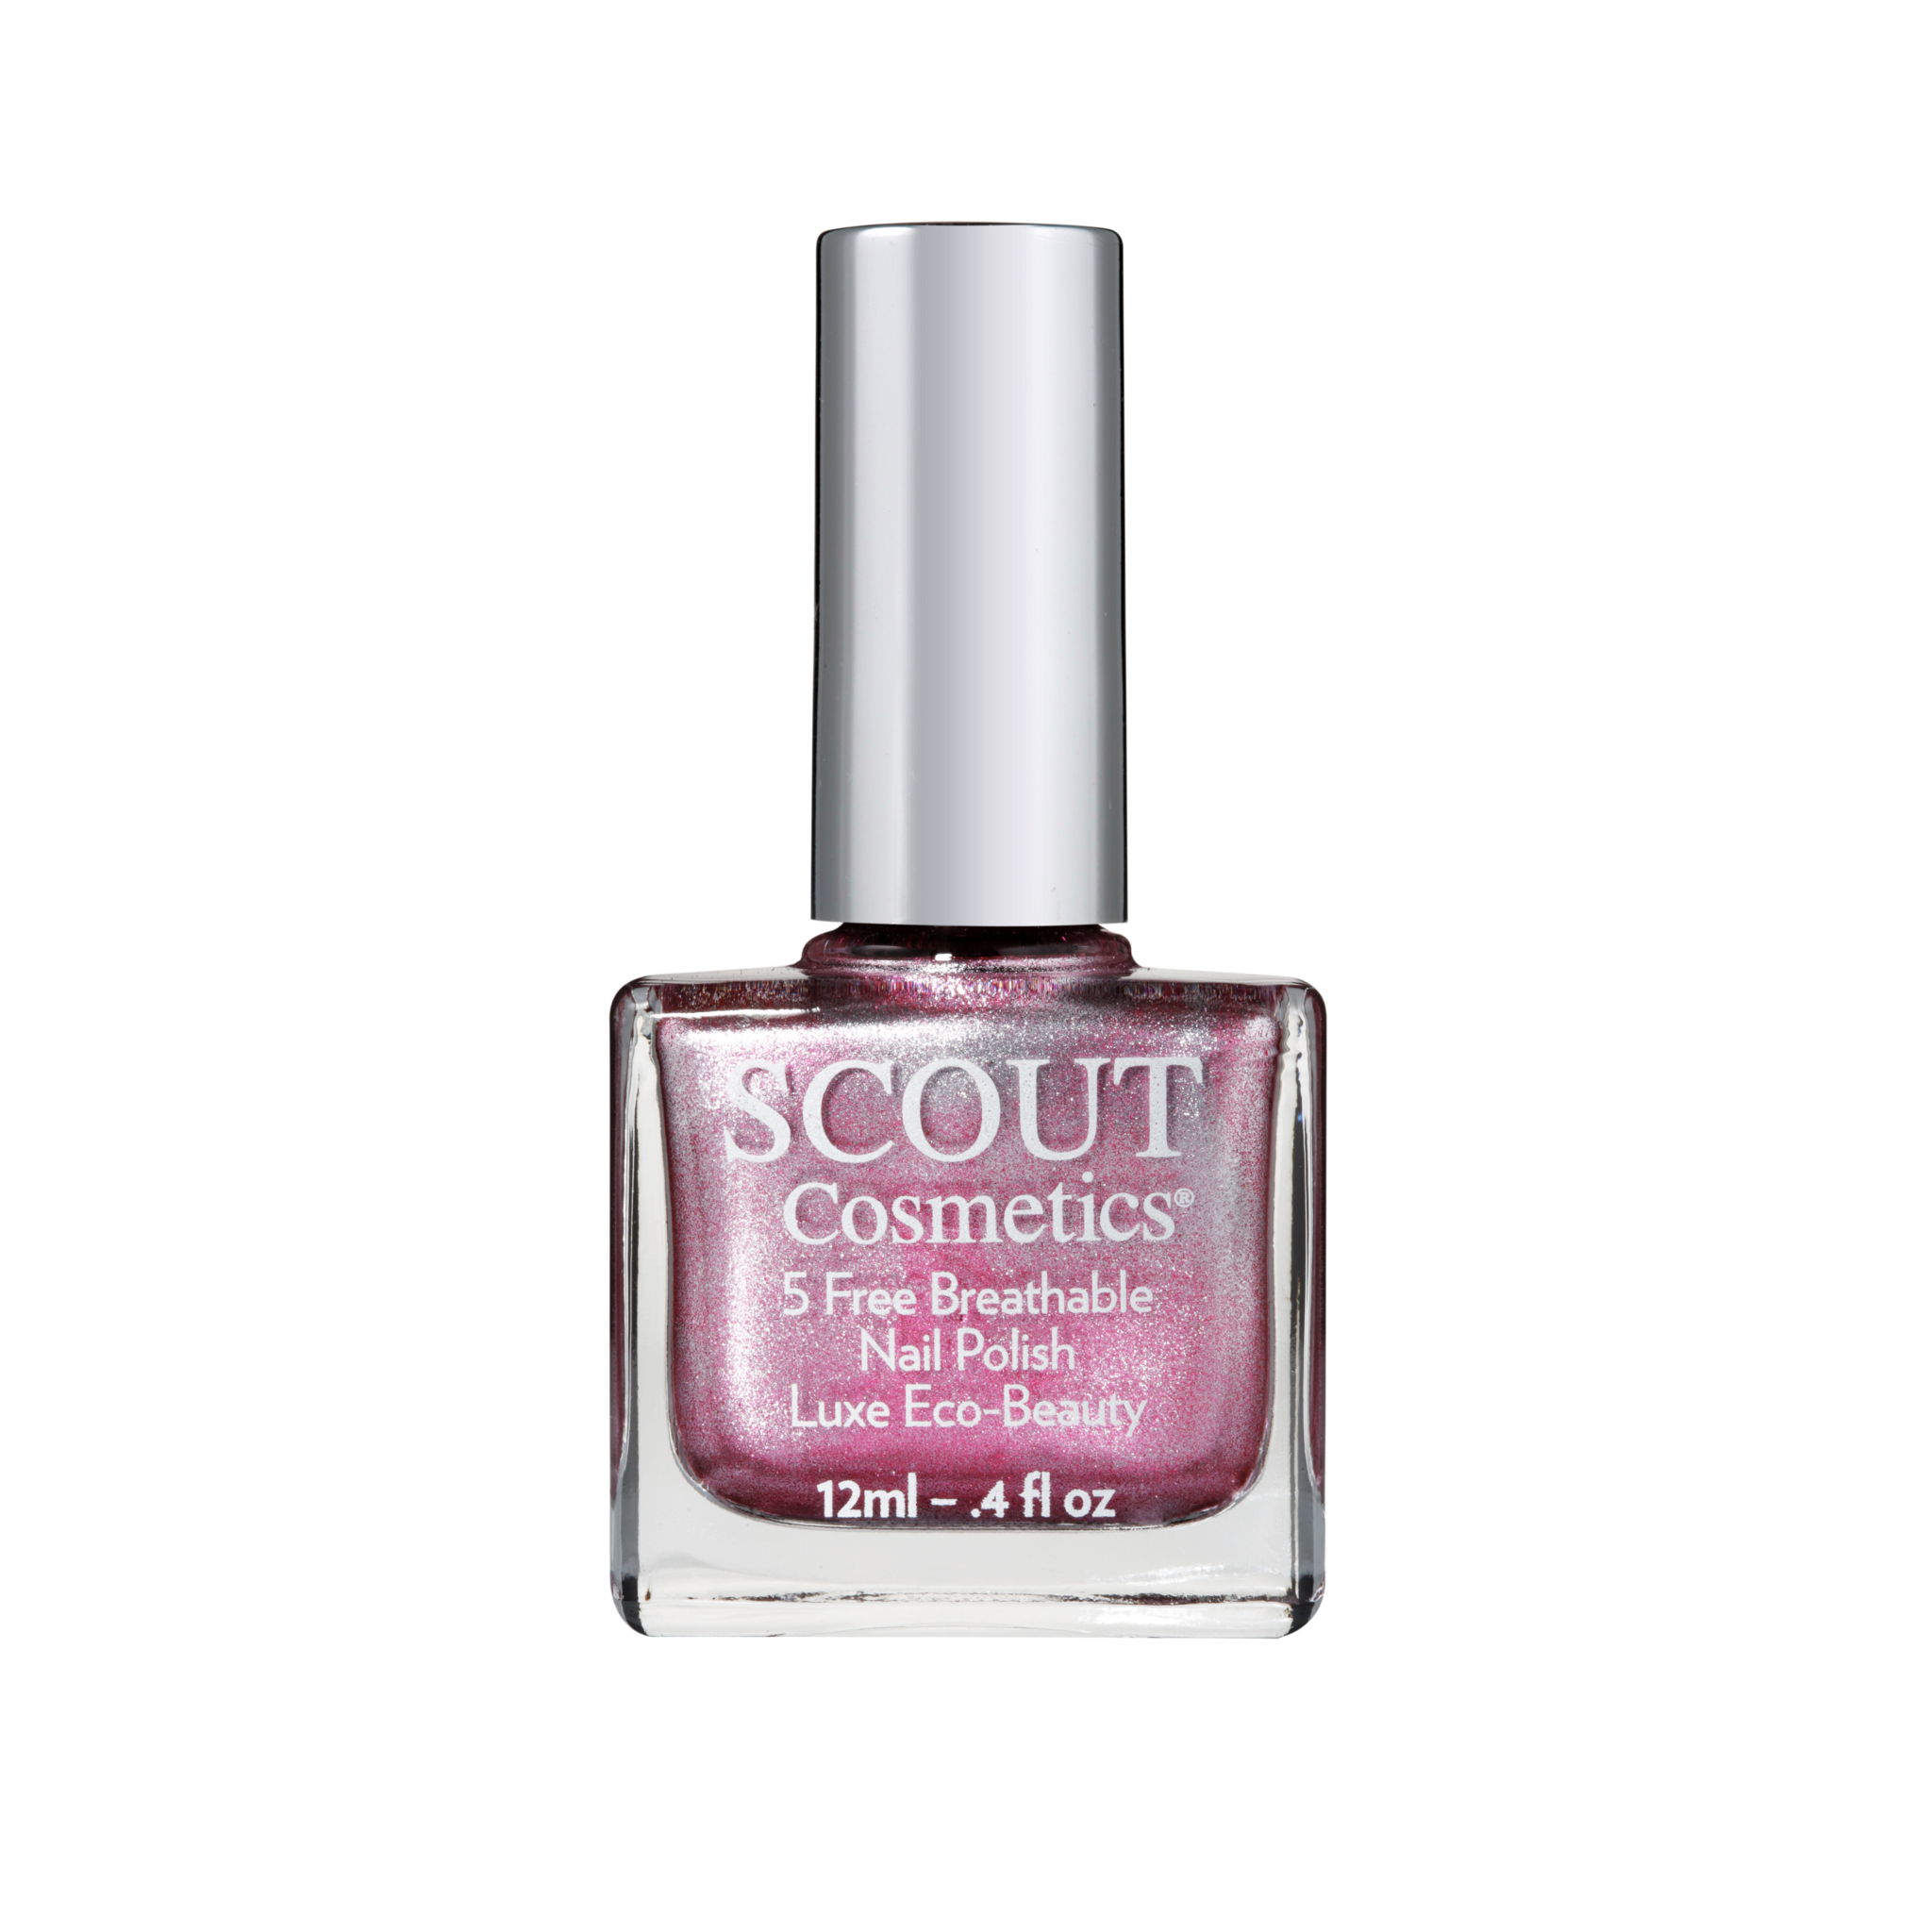 SCOUT Cosmetics Nail Polish - All She Desires